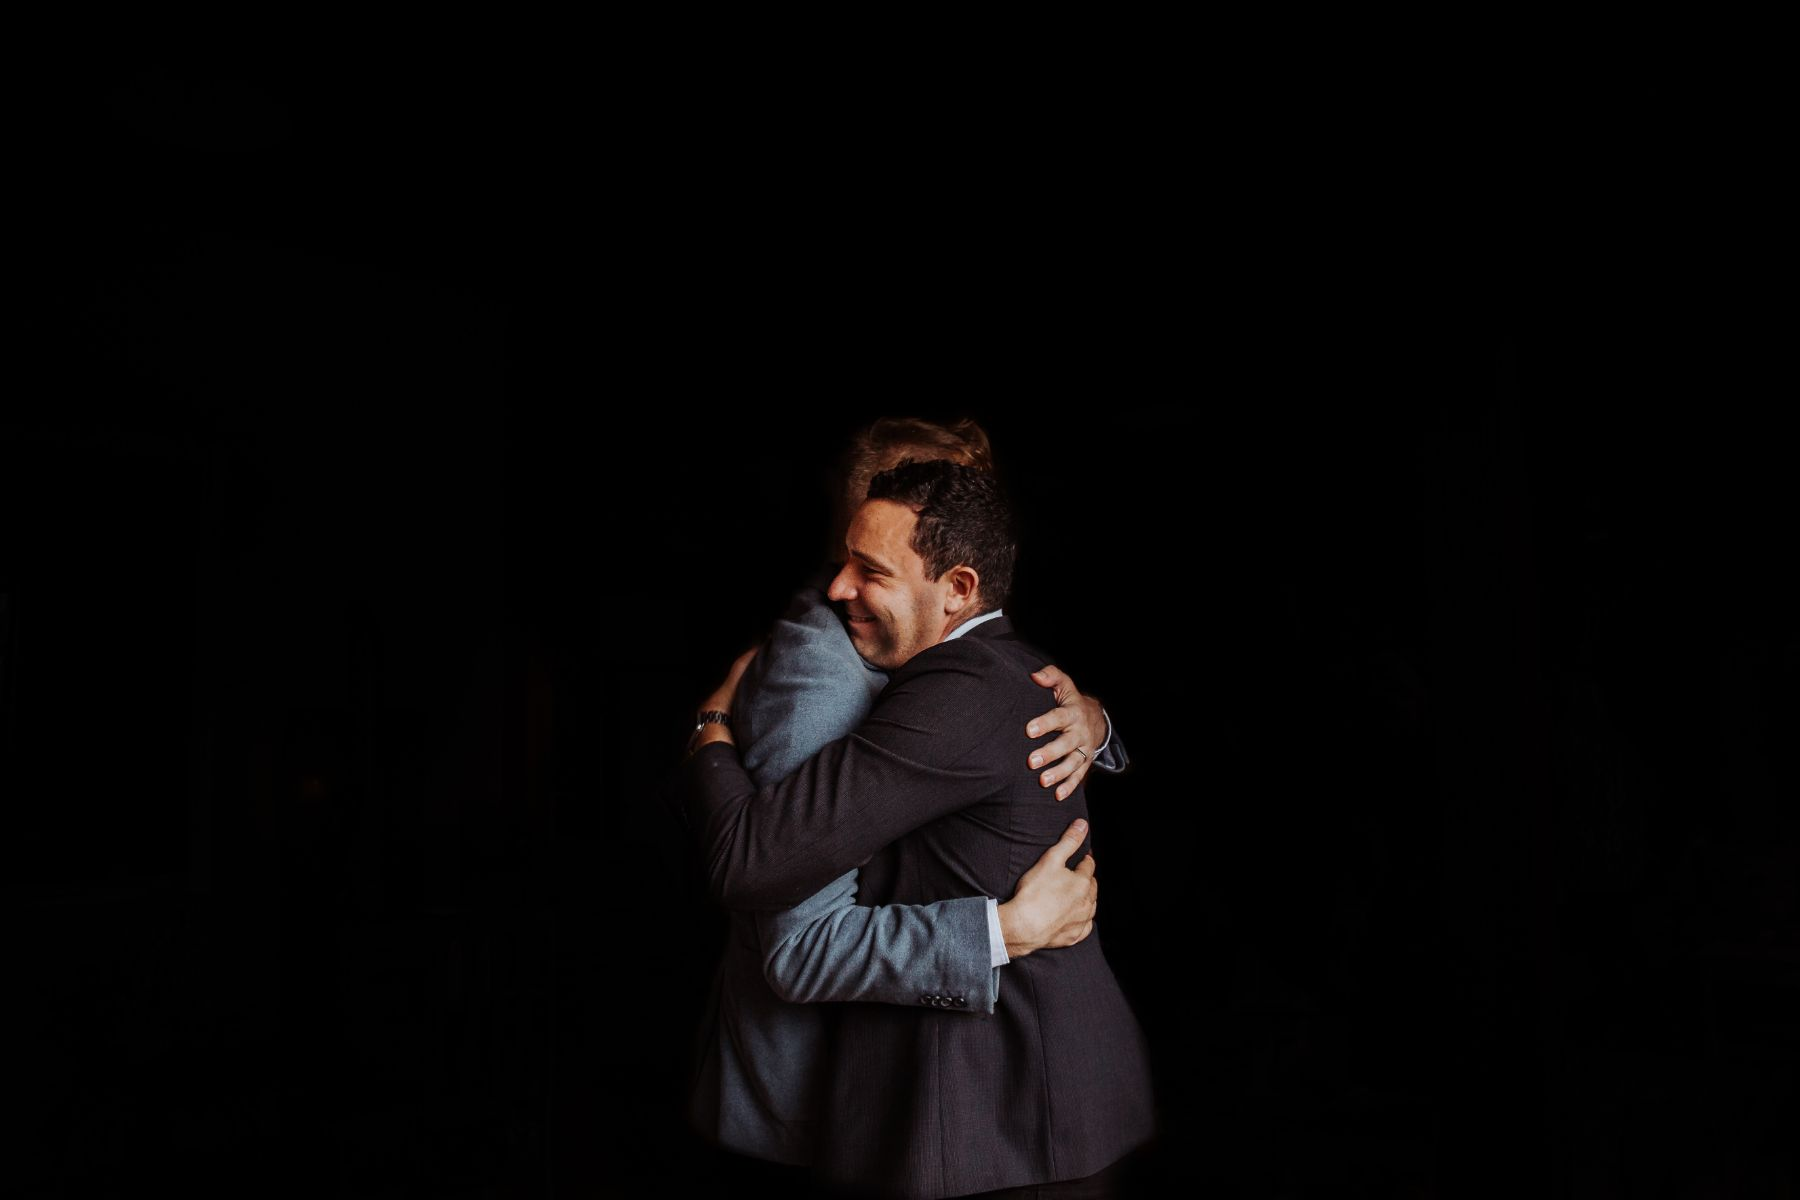 Striking documentary-style wedding portfolio image of two suited men embracing with dark background